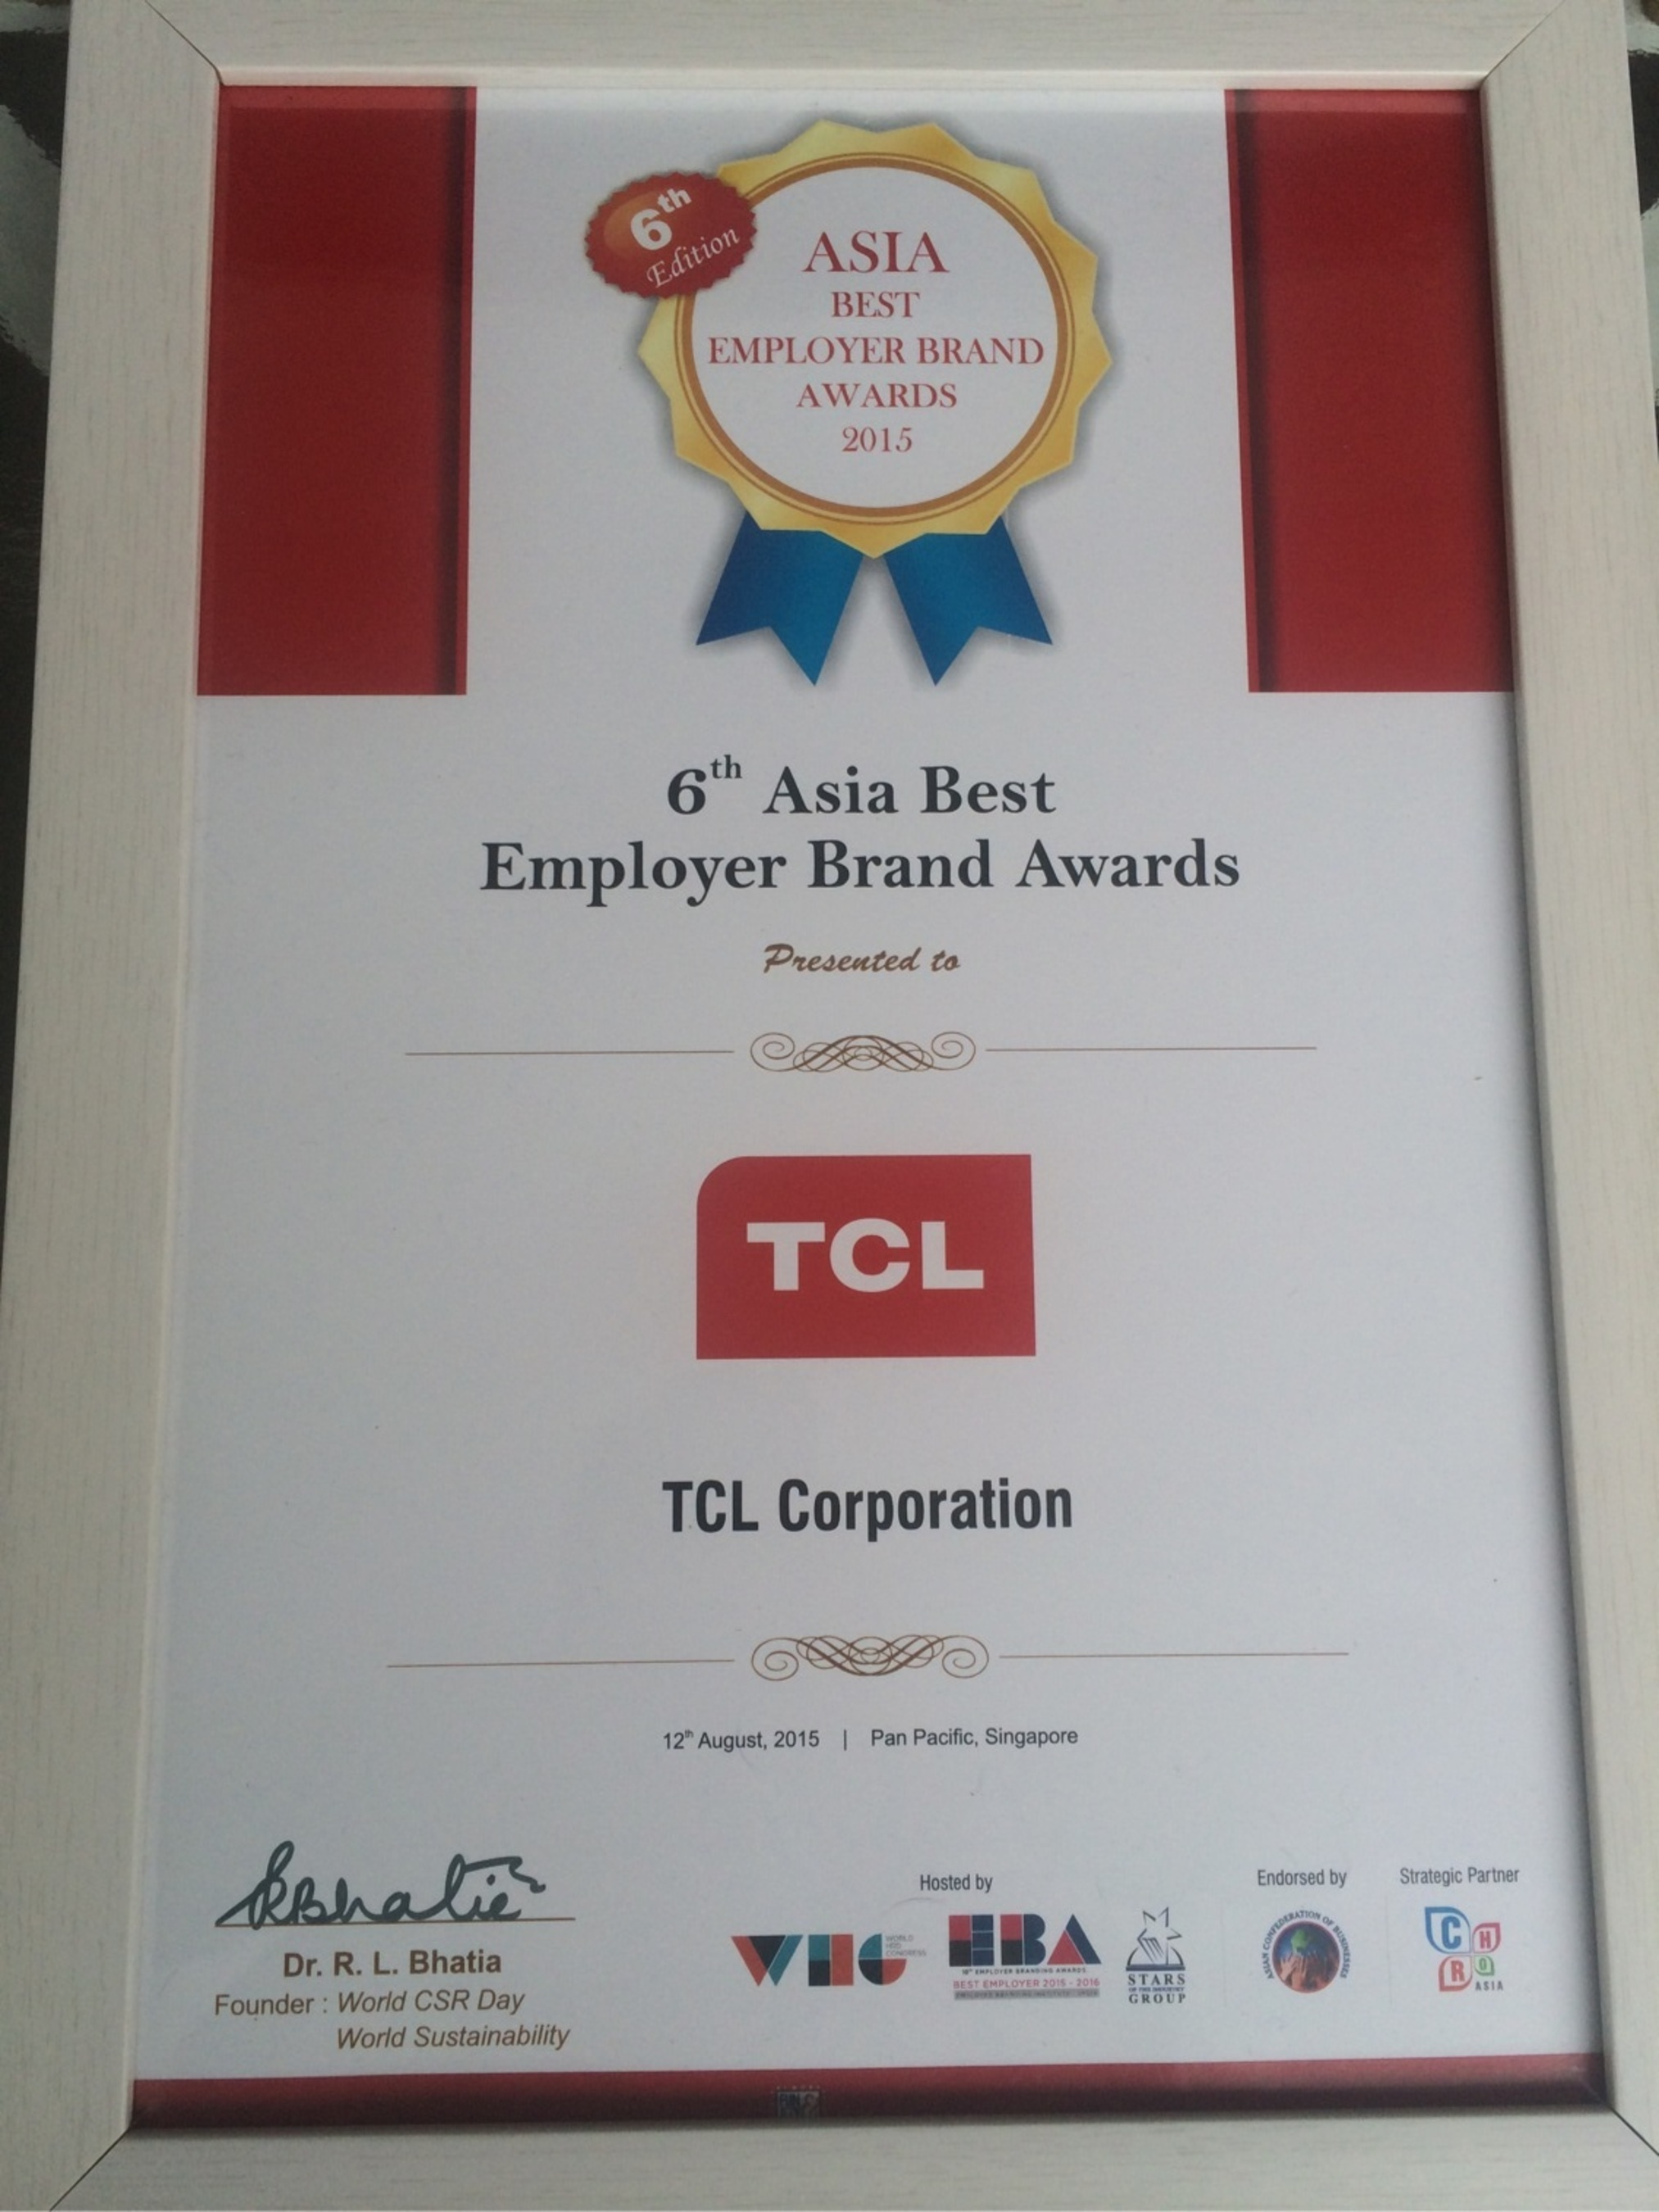 TCL Corporation winning 6th Asia Best Employer Brand Awards